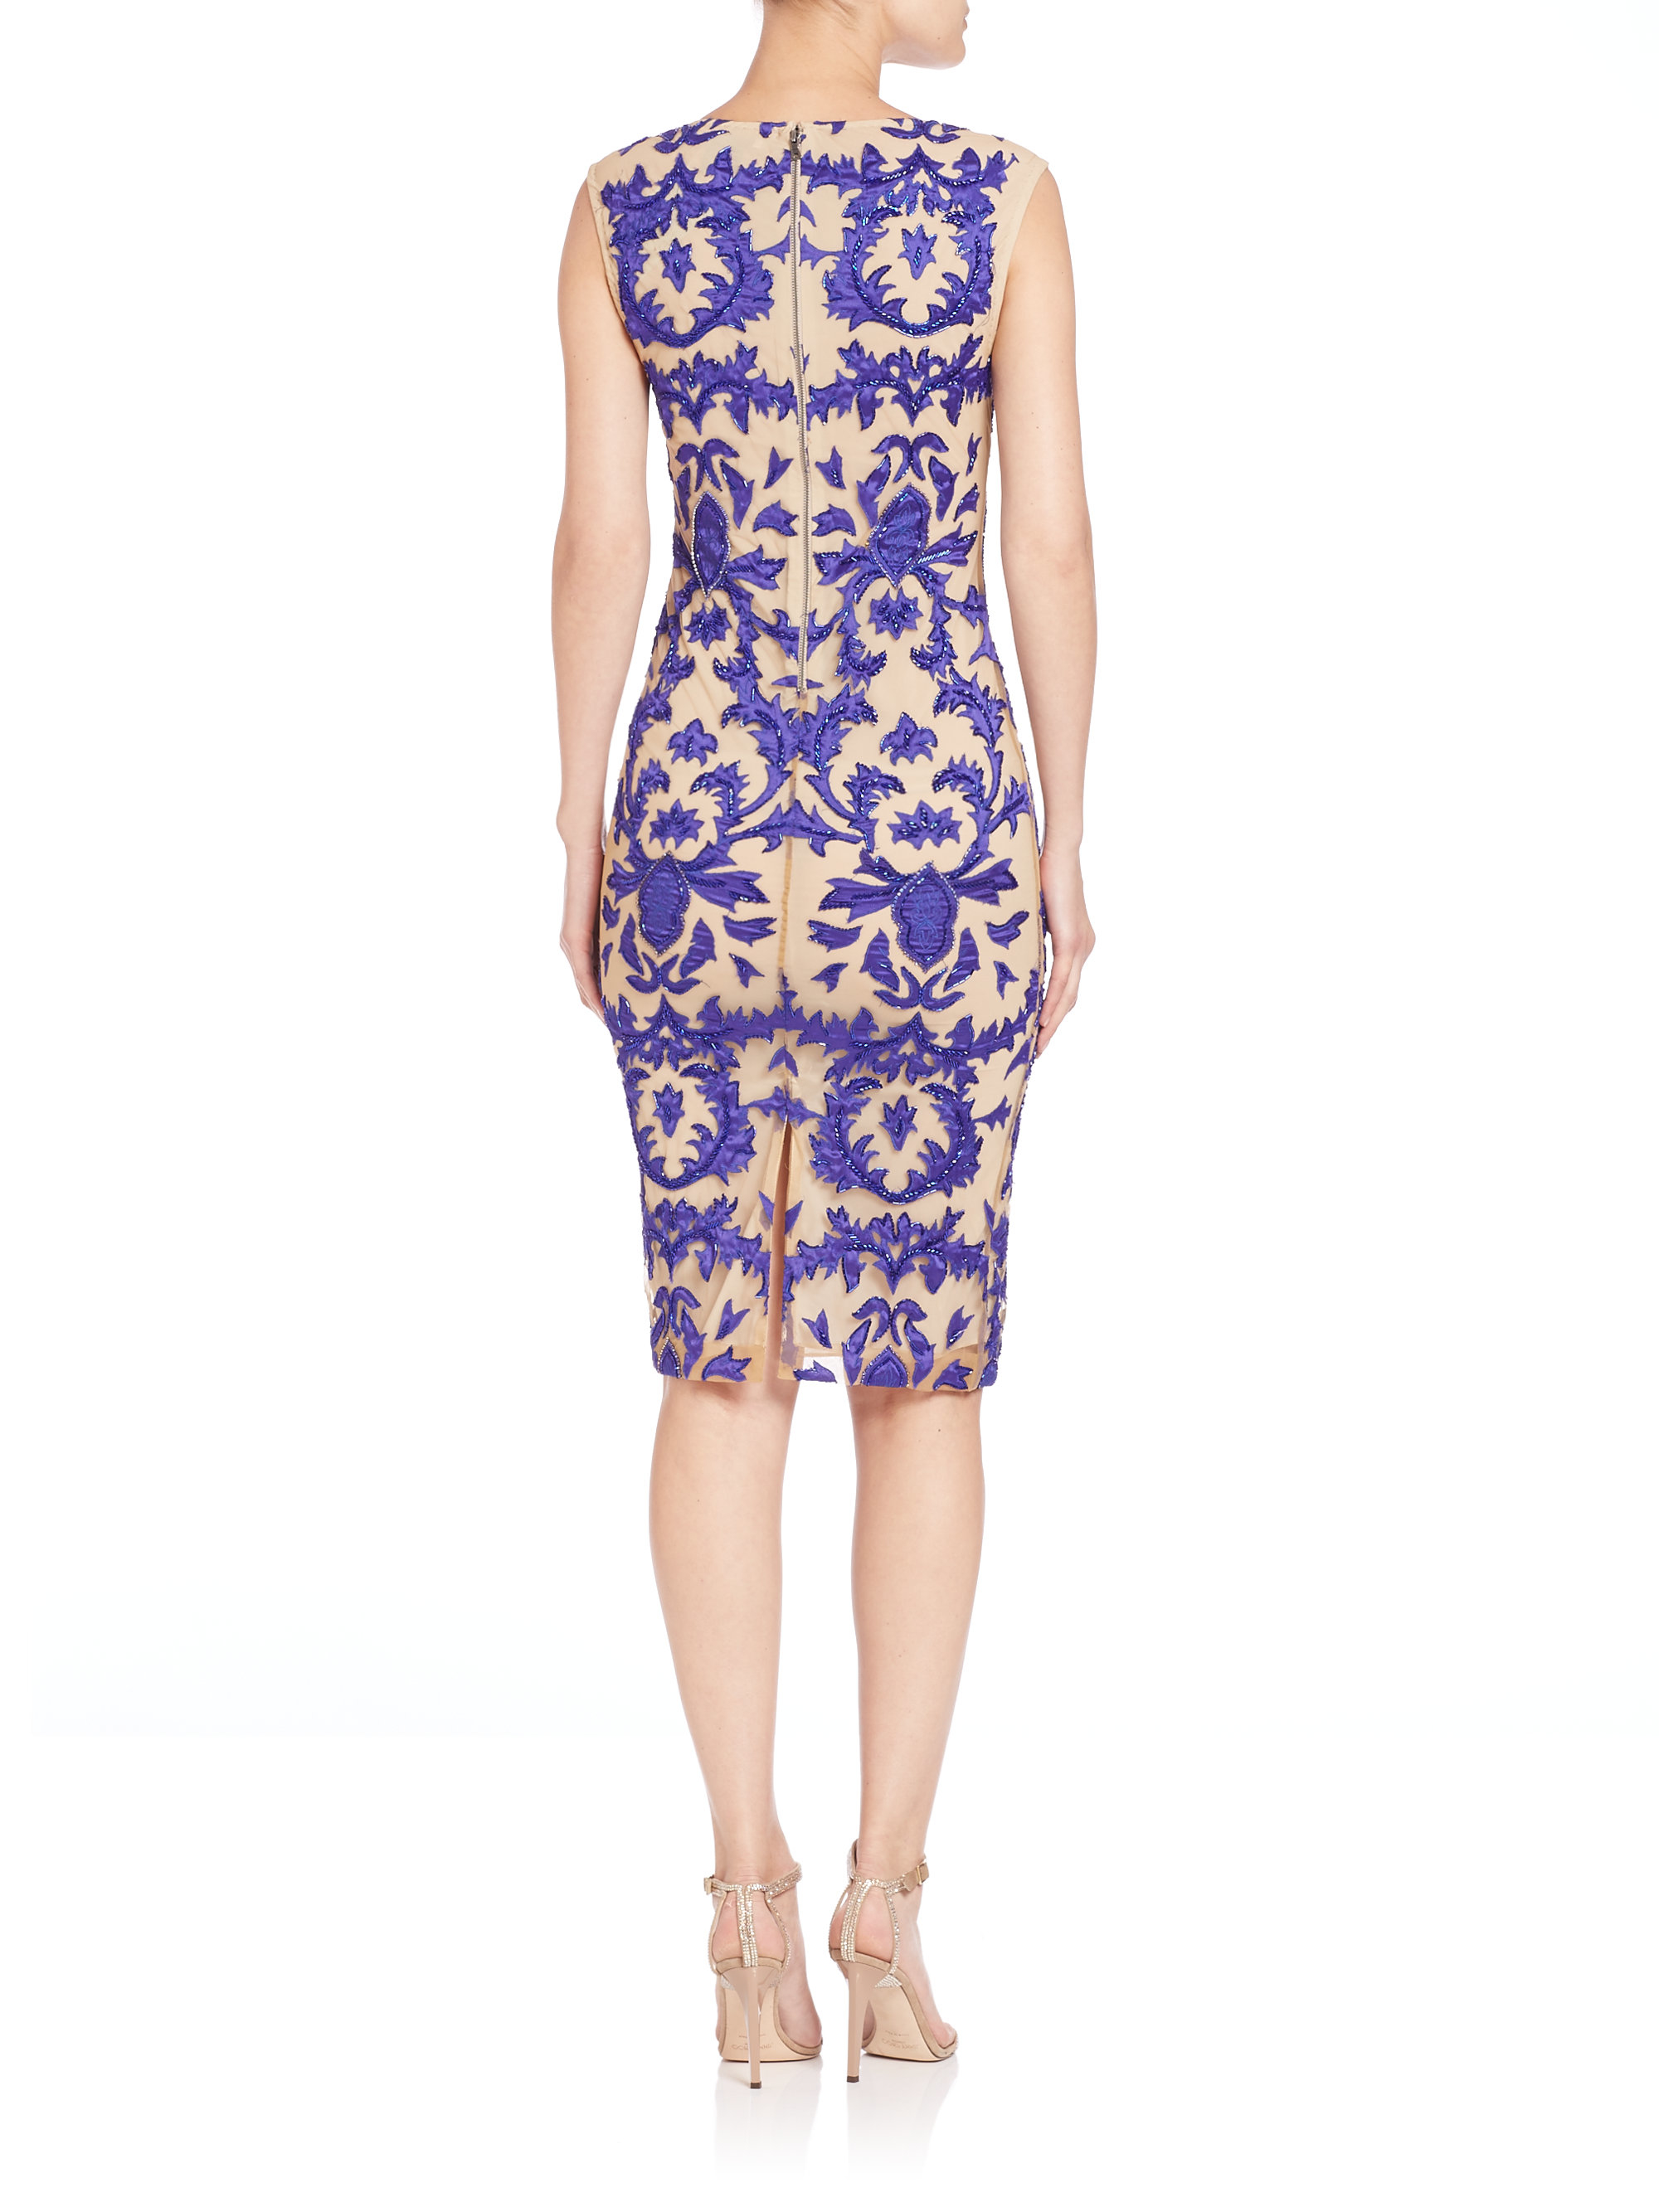 Alice+olivia Woman Embroidered Mesh Gown Blue Size 4 Alice & Olivia ABr4T